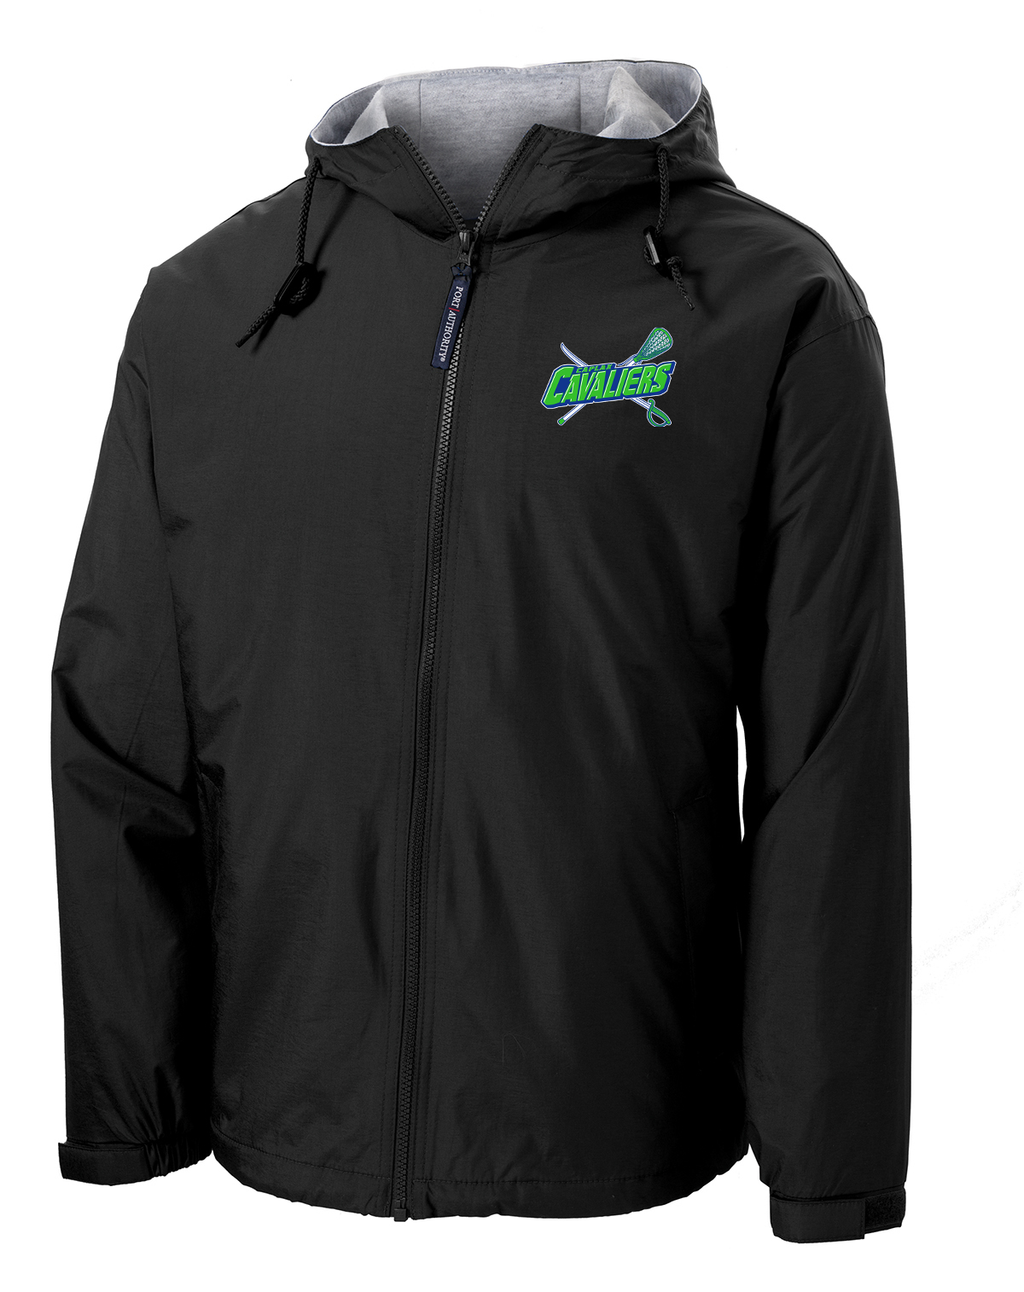 Cavaliers Lacrosse Hooded Jacket